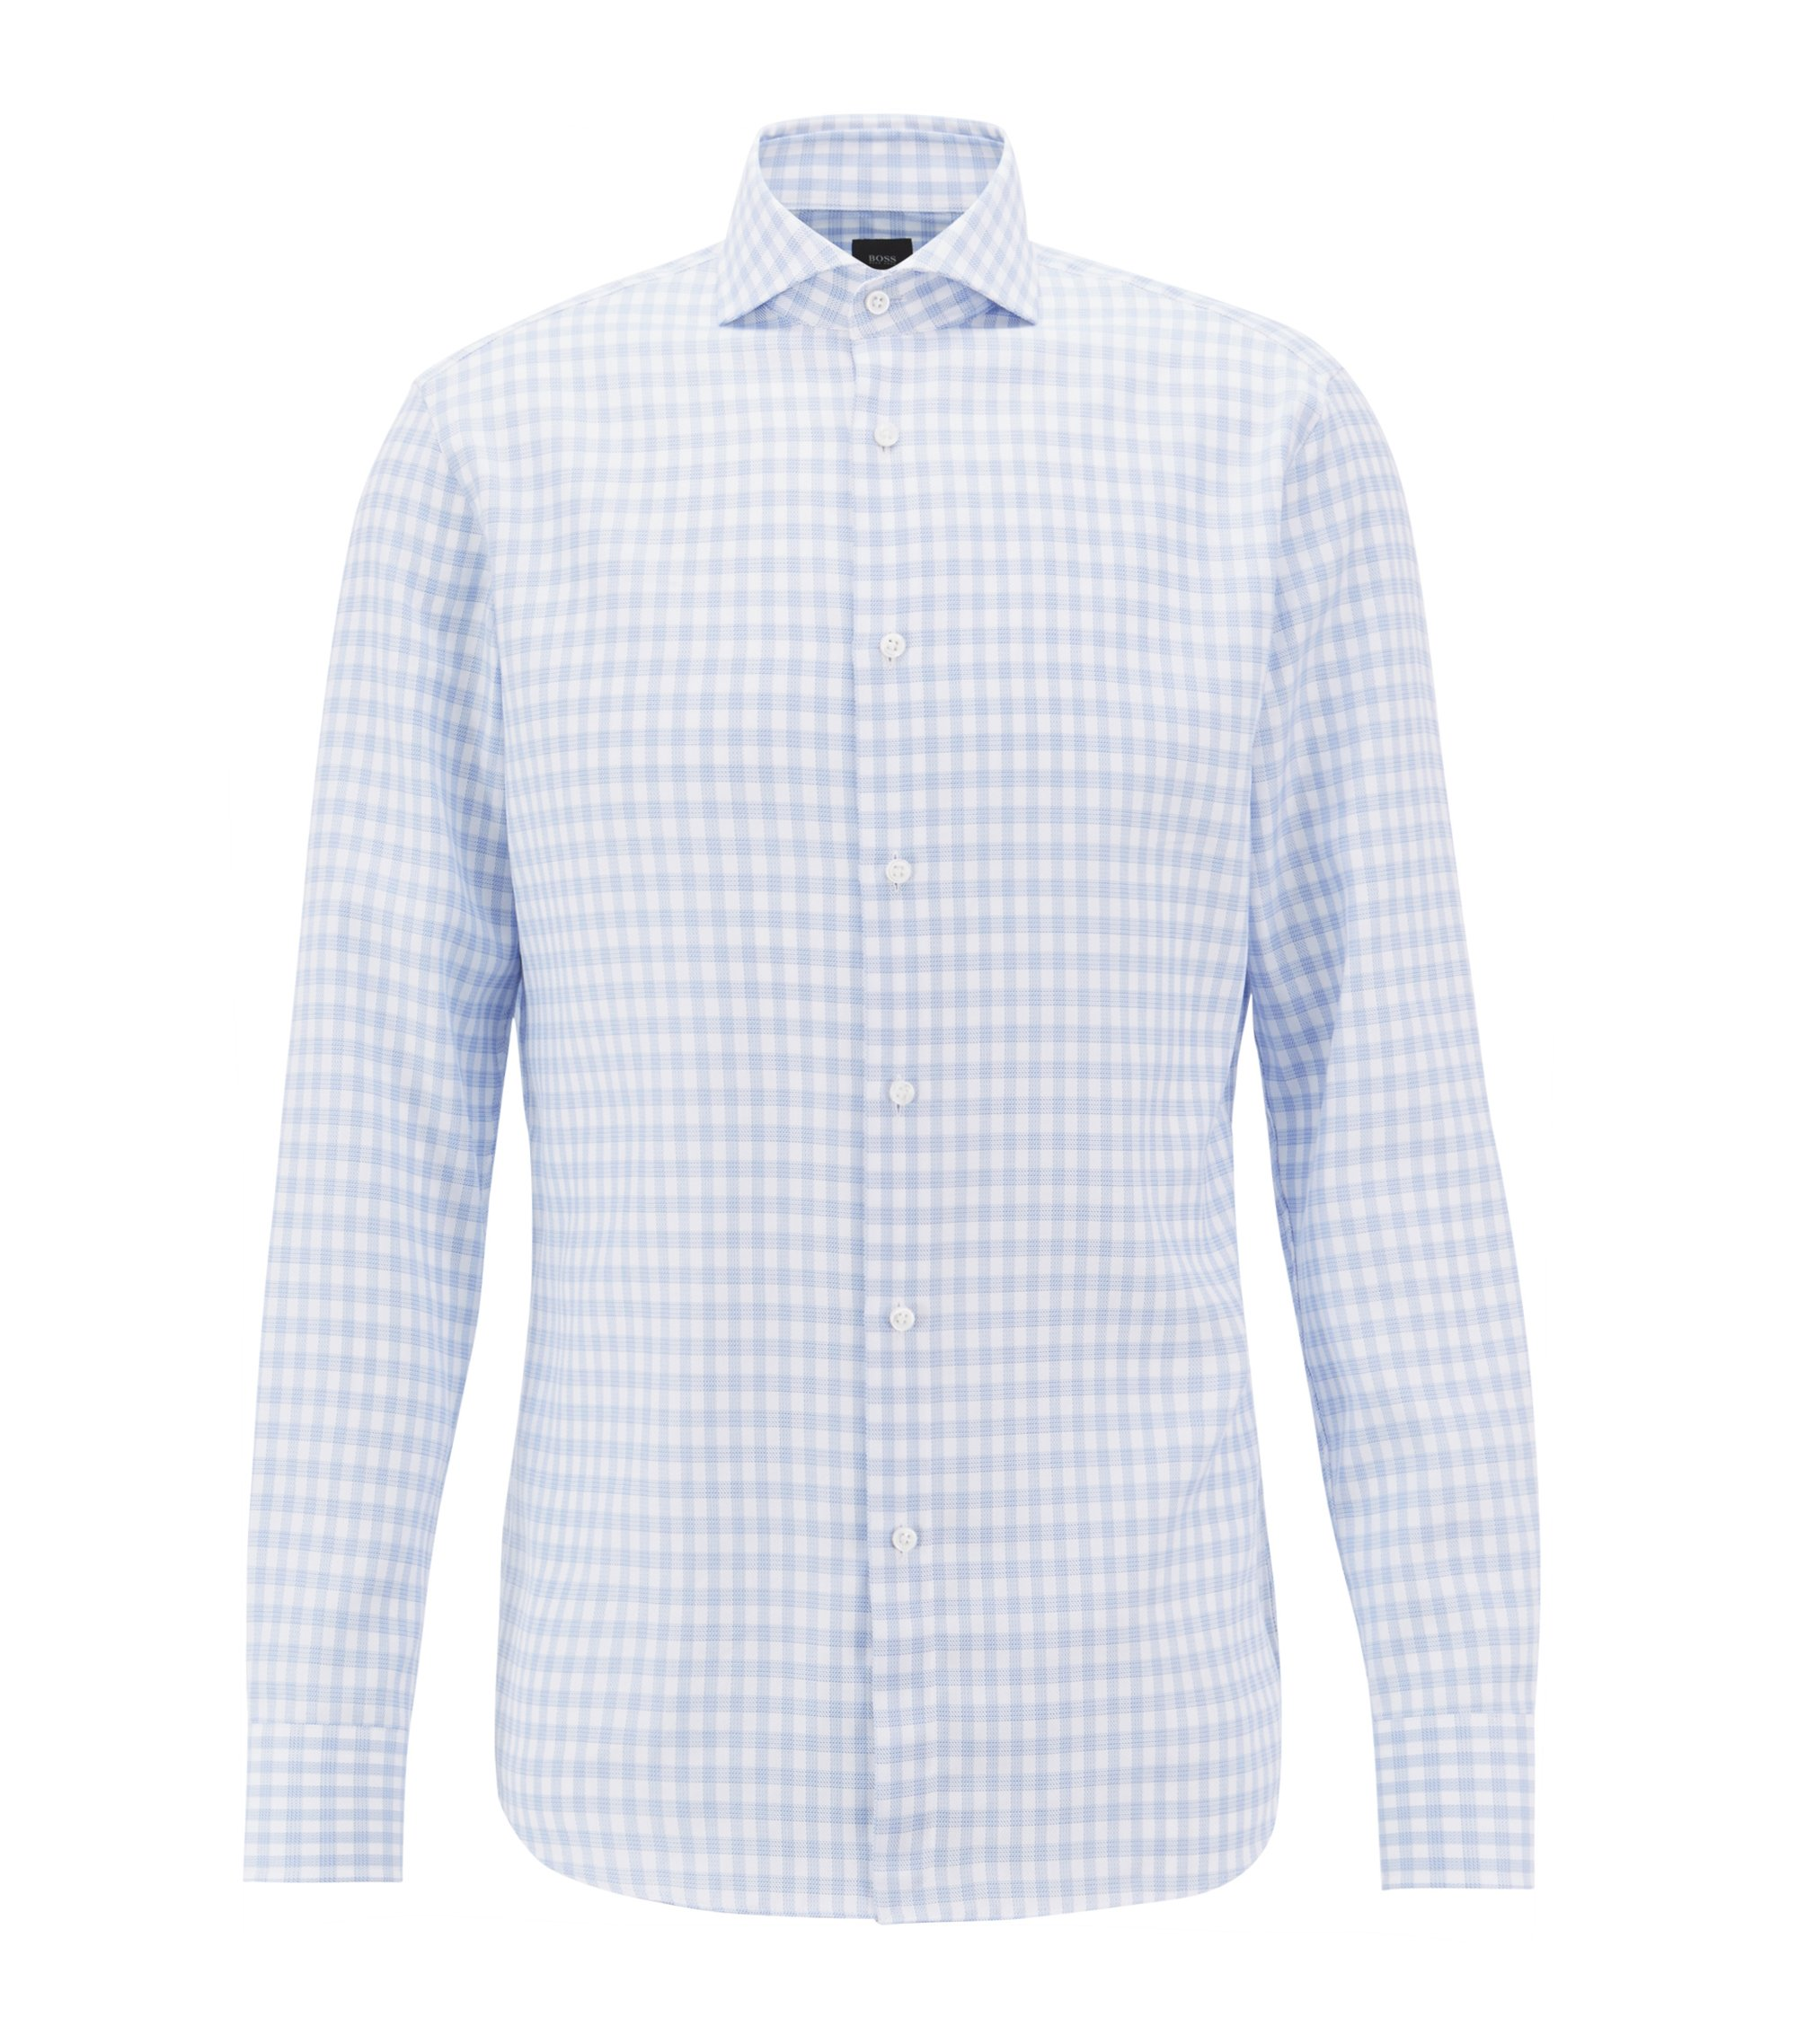 BOSS Tailored slim-fit shirt in Glen-check cotton, Light Blue